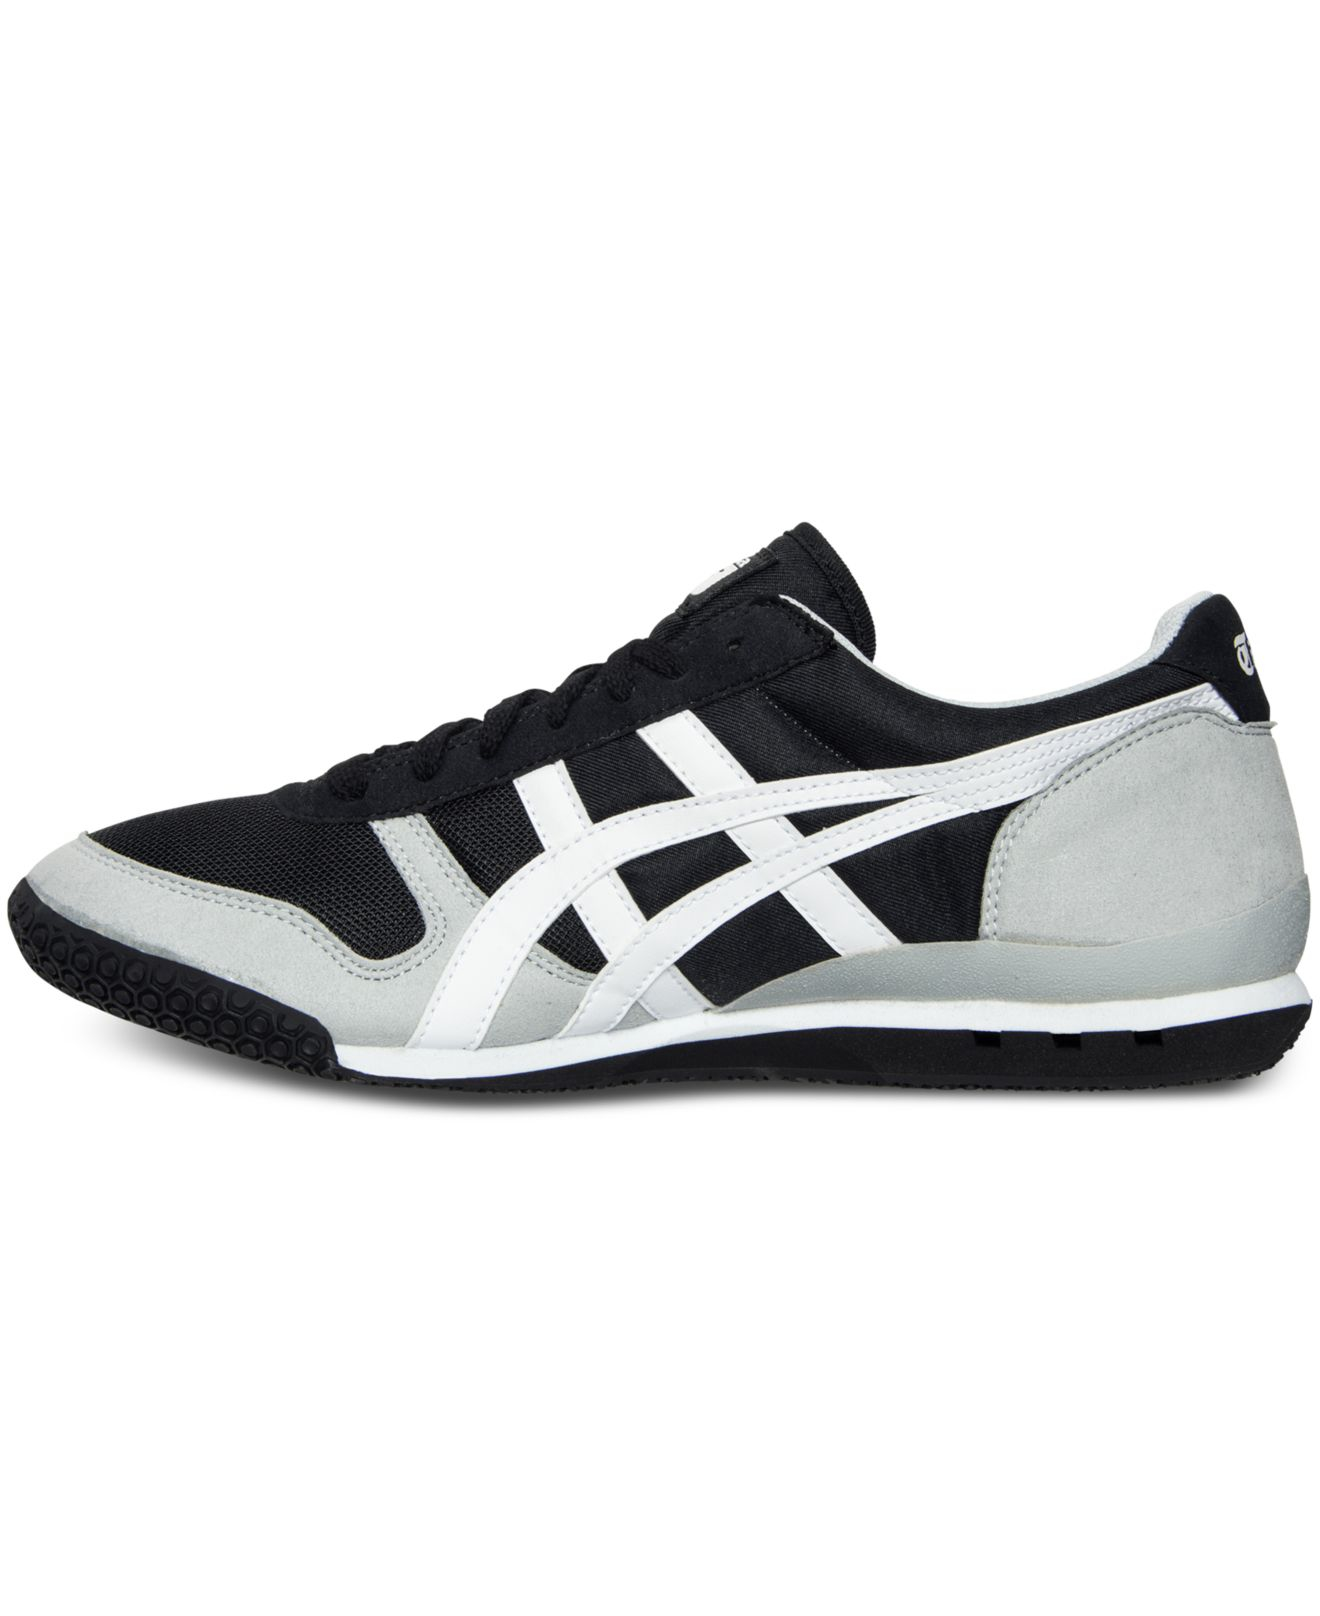 low priced ede71 cfcfa Asics White Men's Onitsuka Tiger Ultimate 81 Casual Sneakers From Finish  Line for men